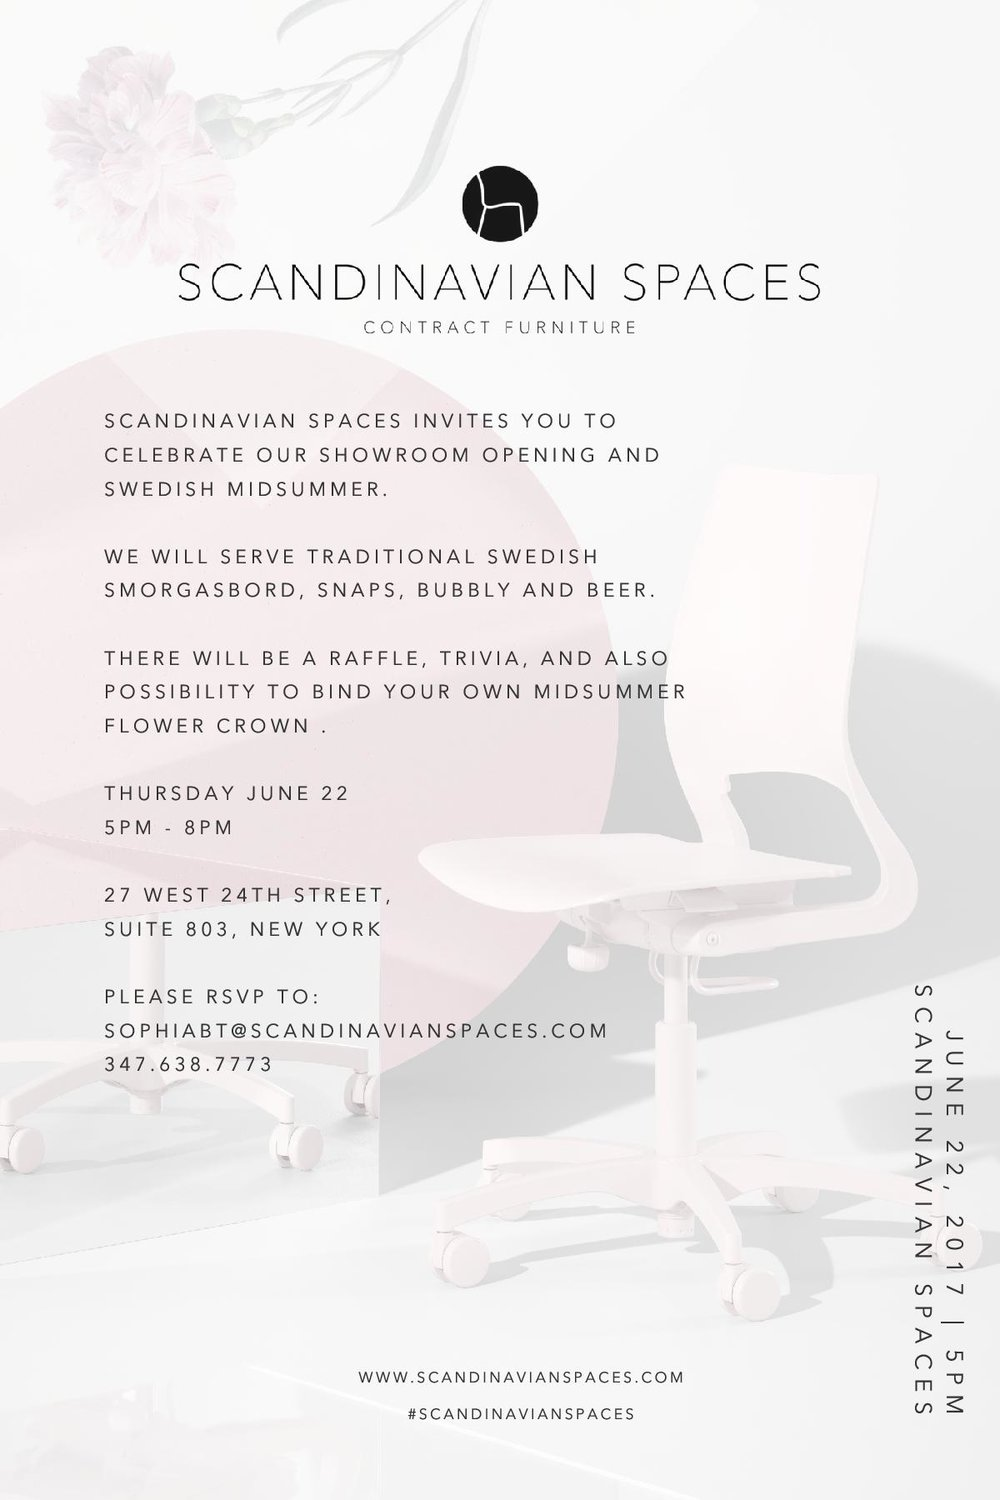 New York Scandinavian Spaces